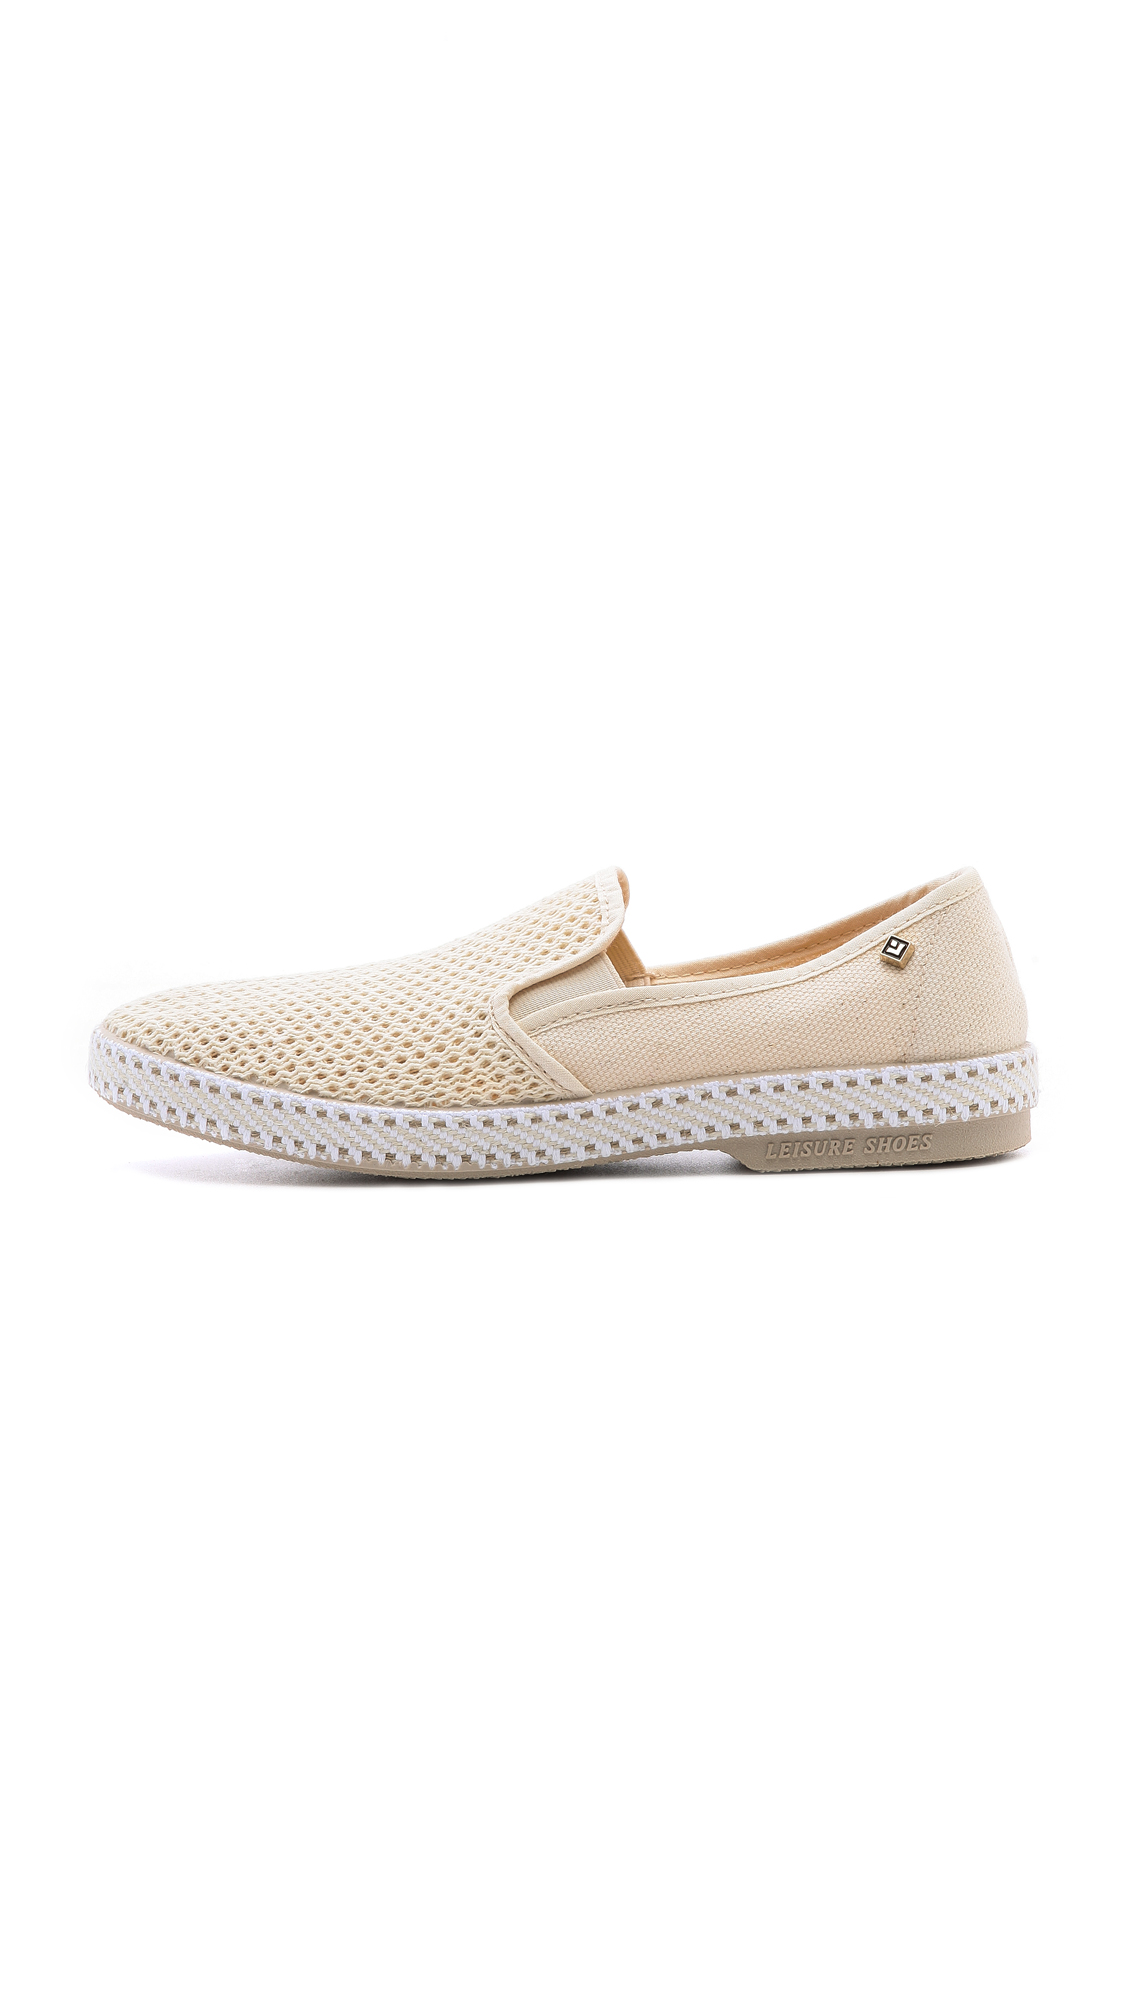 rivieras classic slip on sneakers in lyst